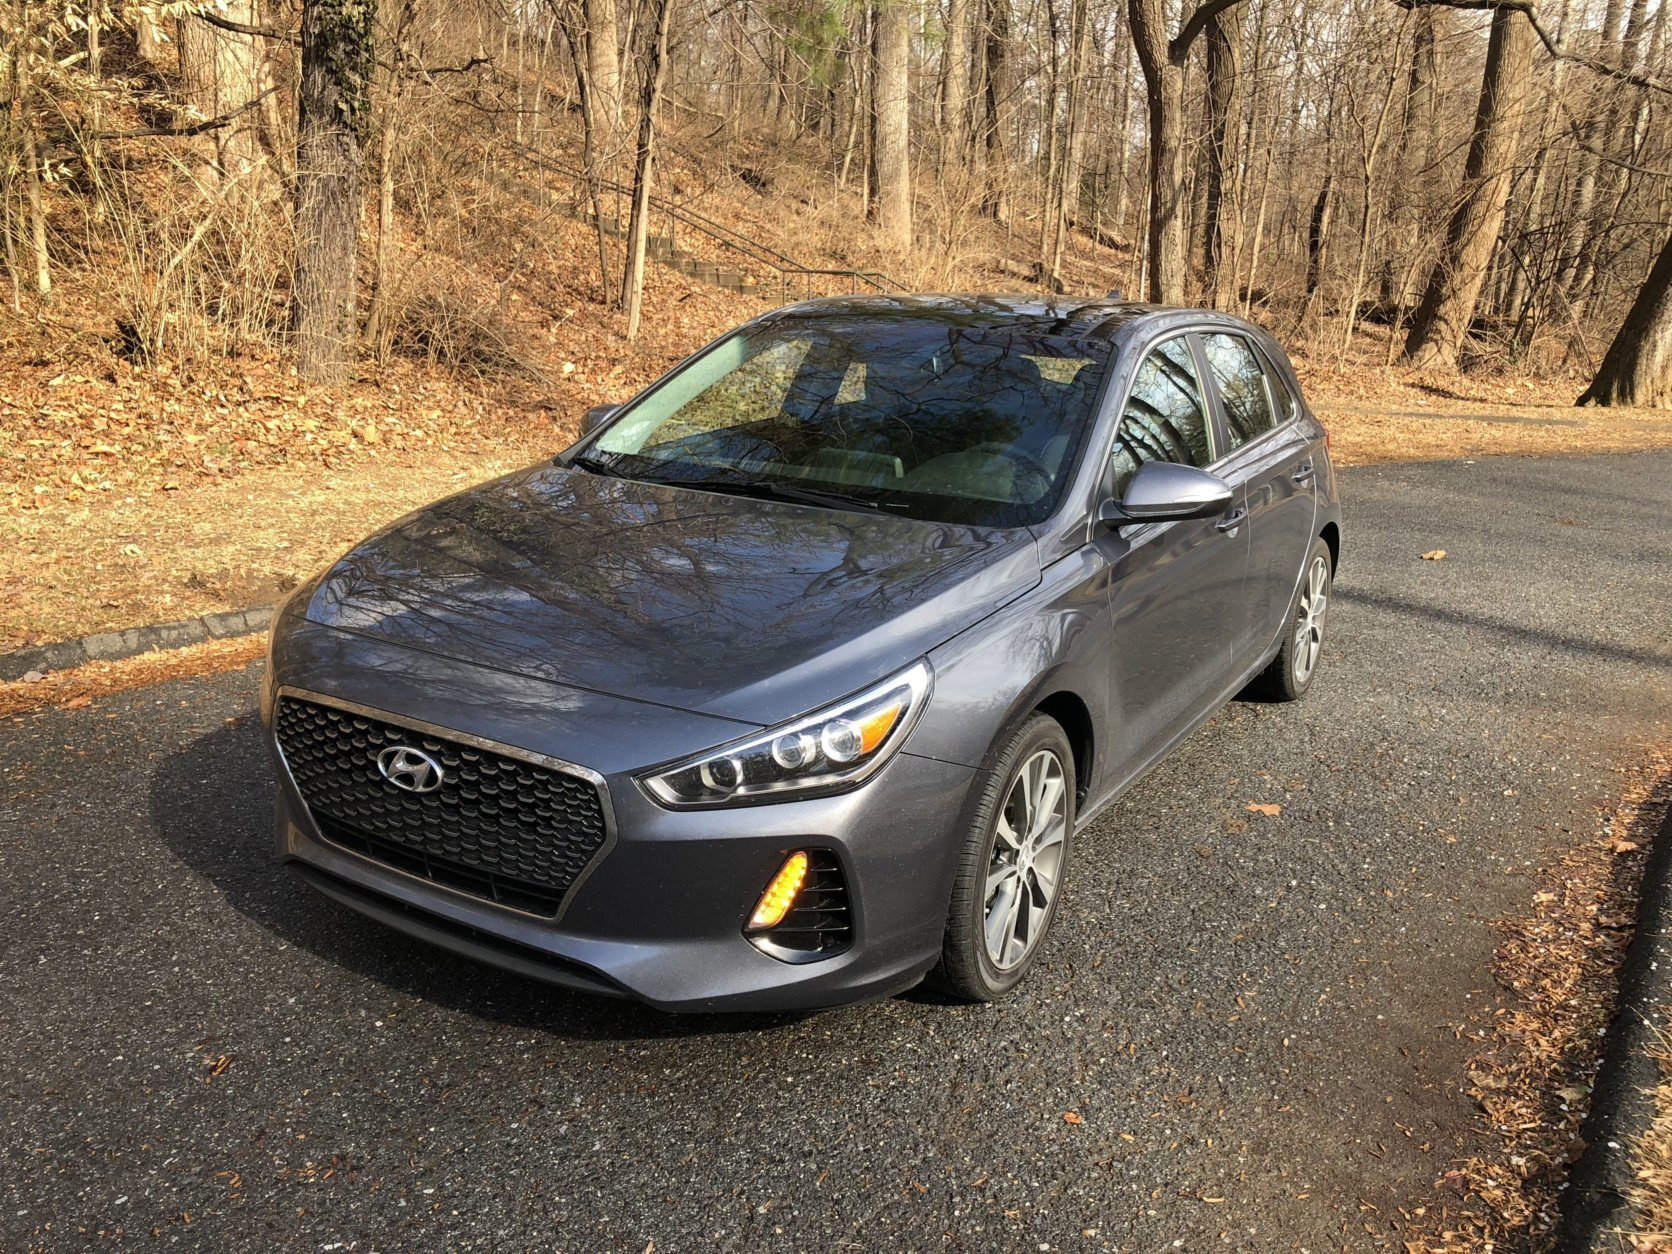 The five-door hatchback version of the Elantra adds utility to this compact, making it comparable to a small crossover size inside.   (WTOP/Mike Parris)